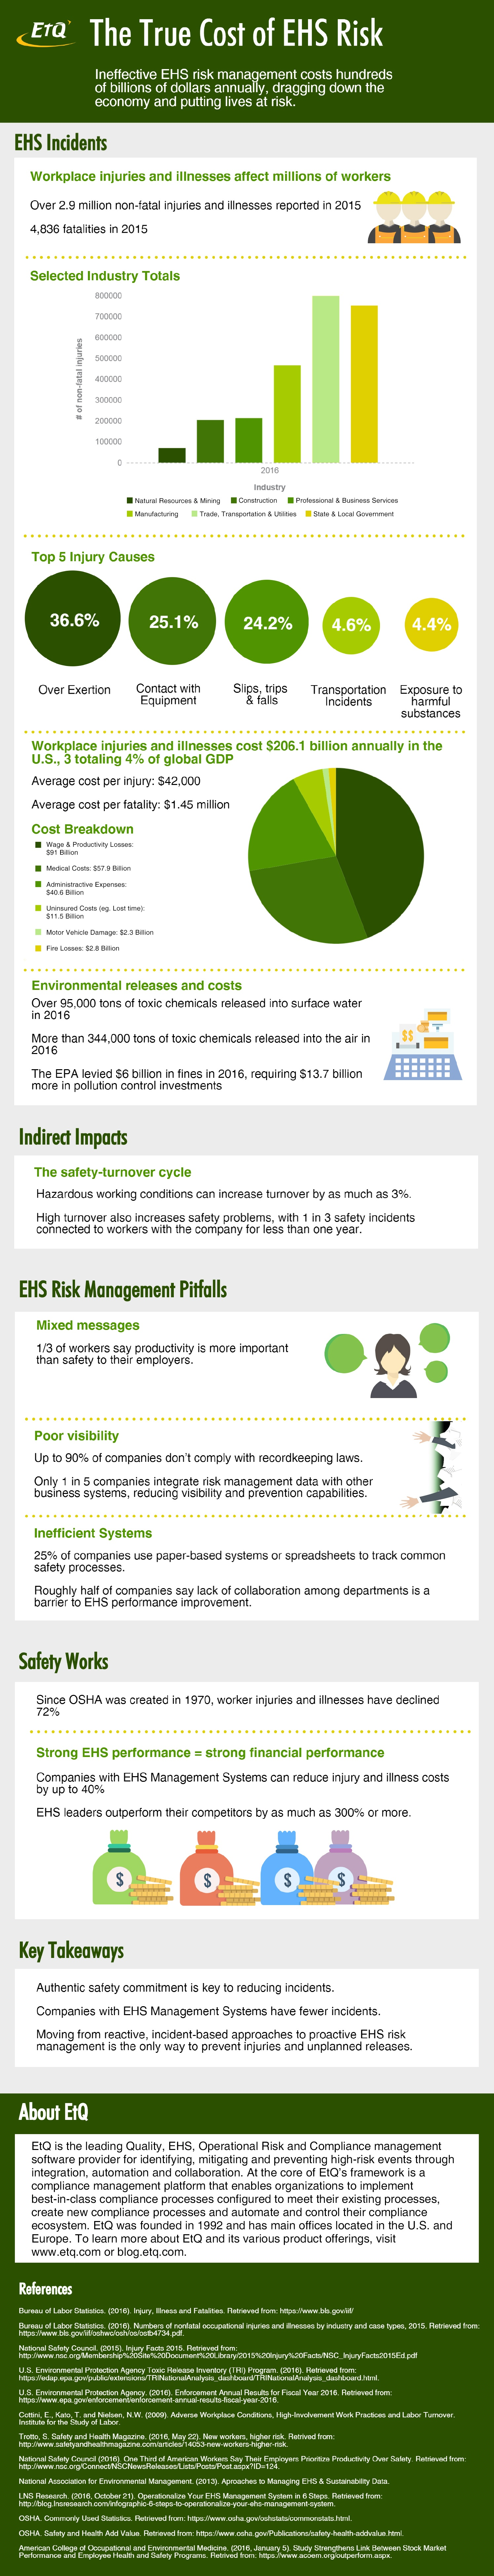 ehs-risk_Nov 8 Final updated copy.jpg